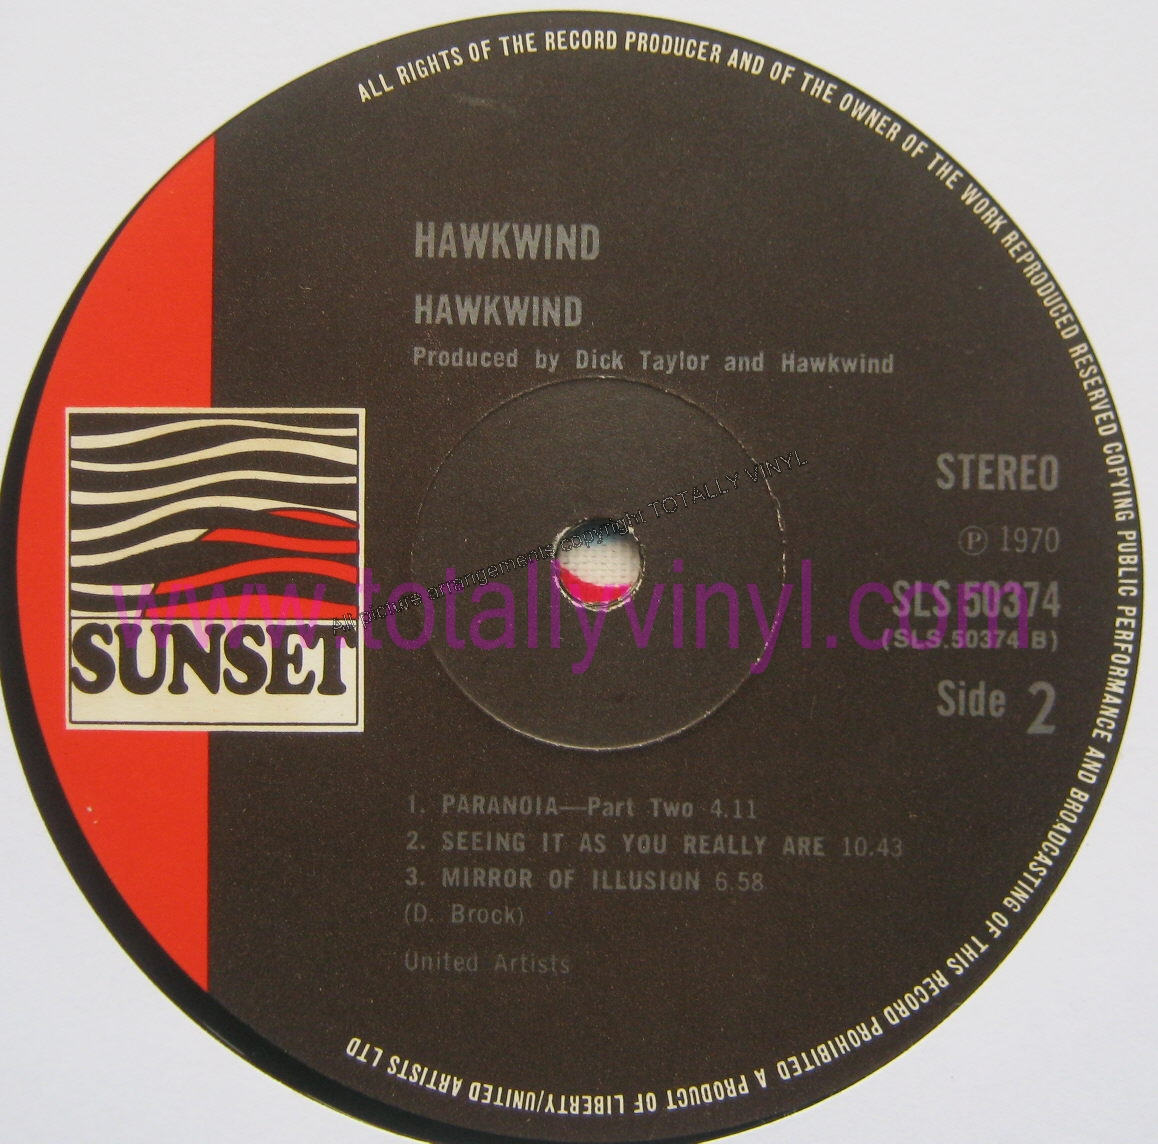 Totally Vinyl Records Hawkwind Hawkwind Autographed